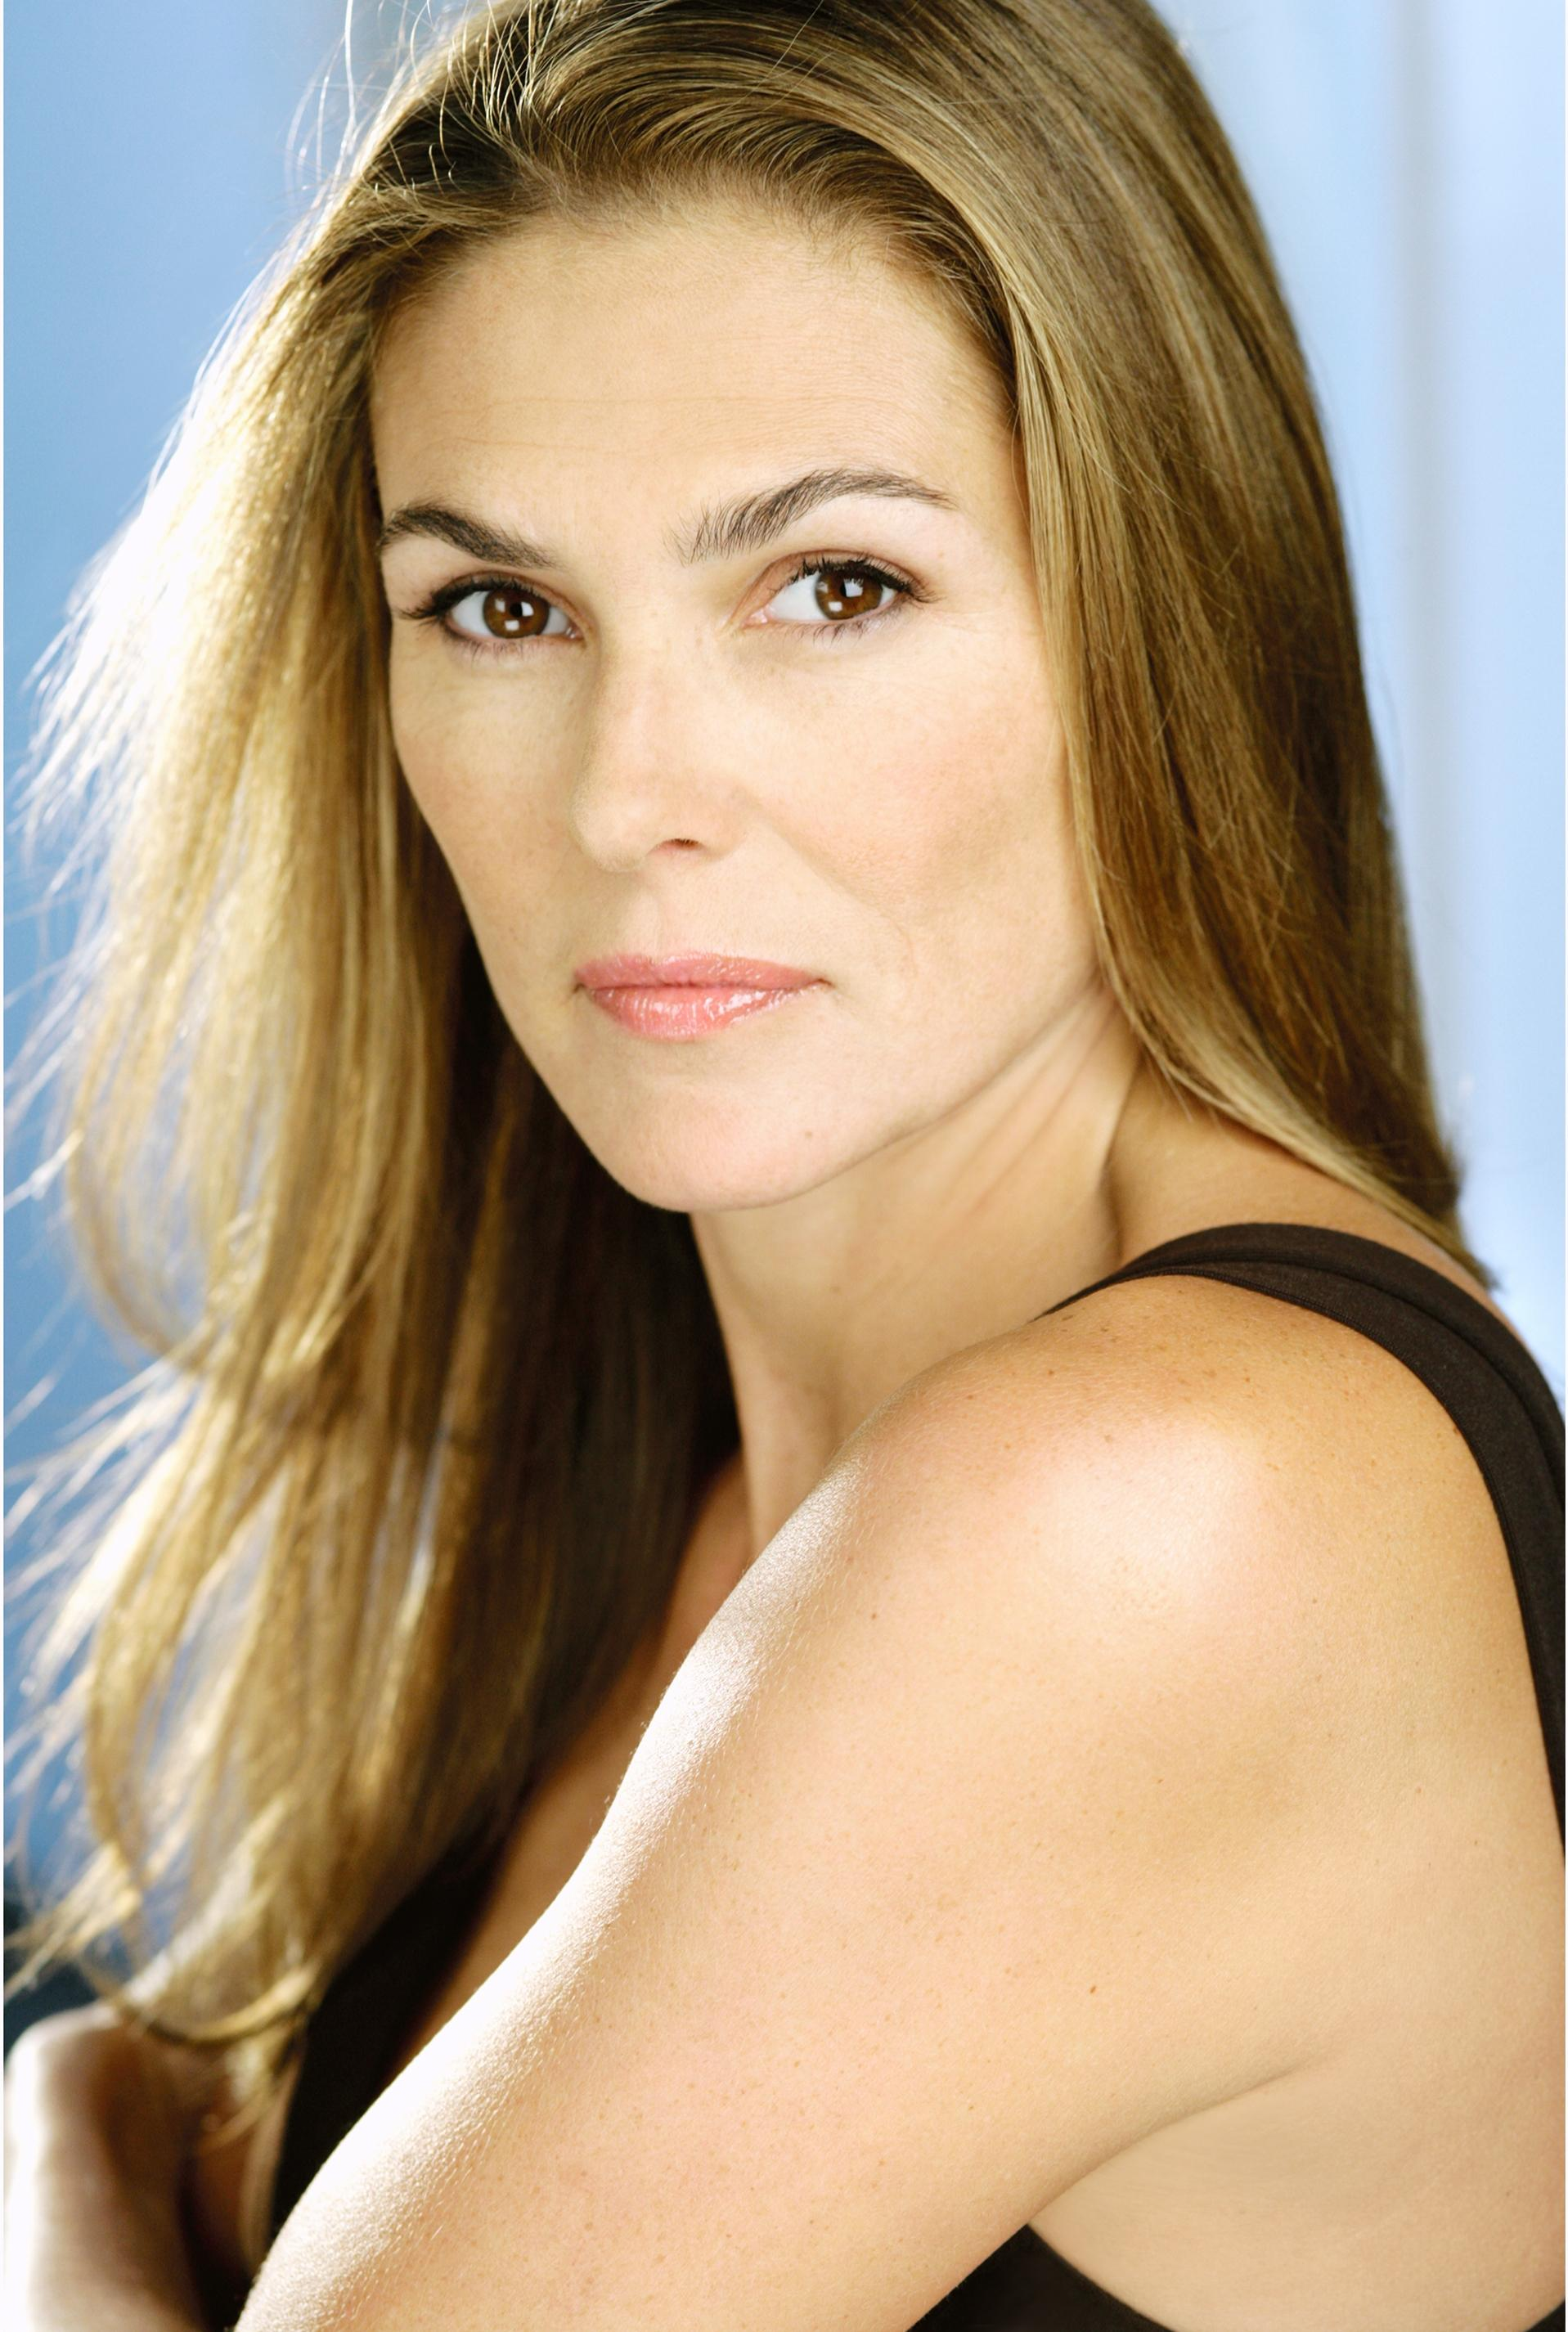 PaigeTurcoPaige Turco Person Of Interest